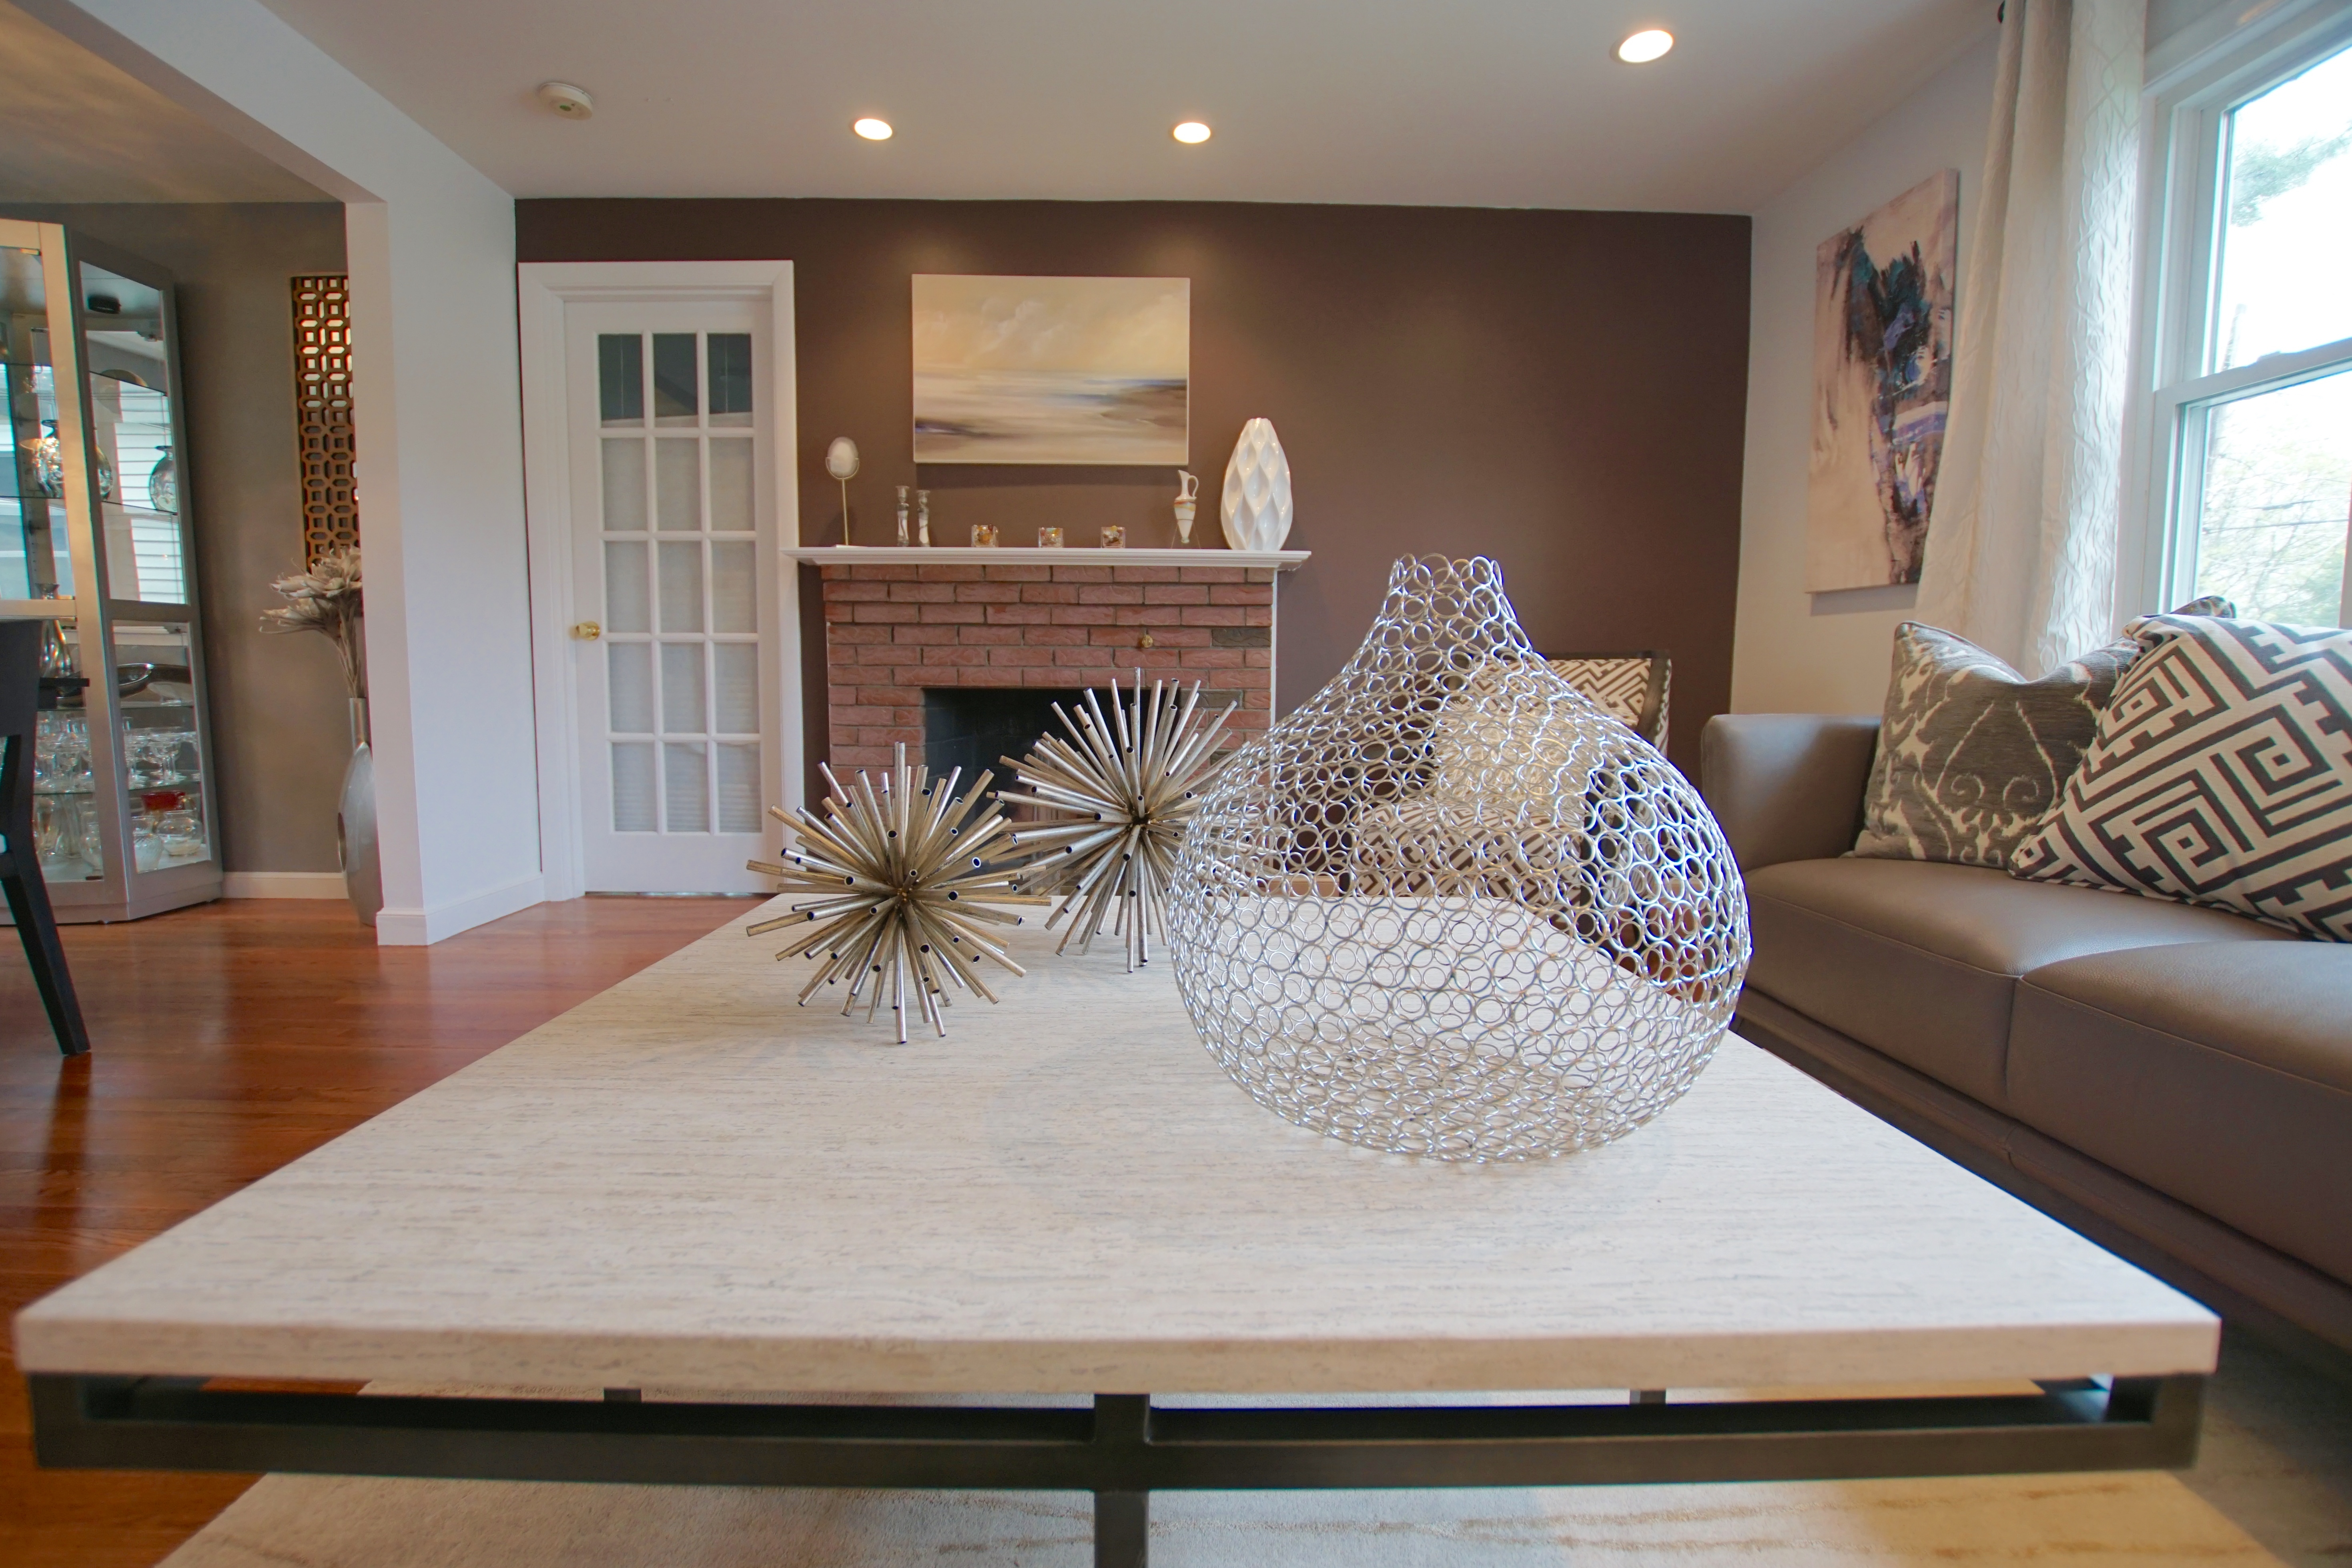 Finished interior design by Interiors by Maey in Canton.